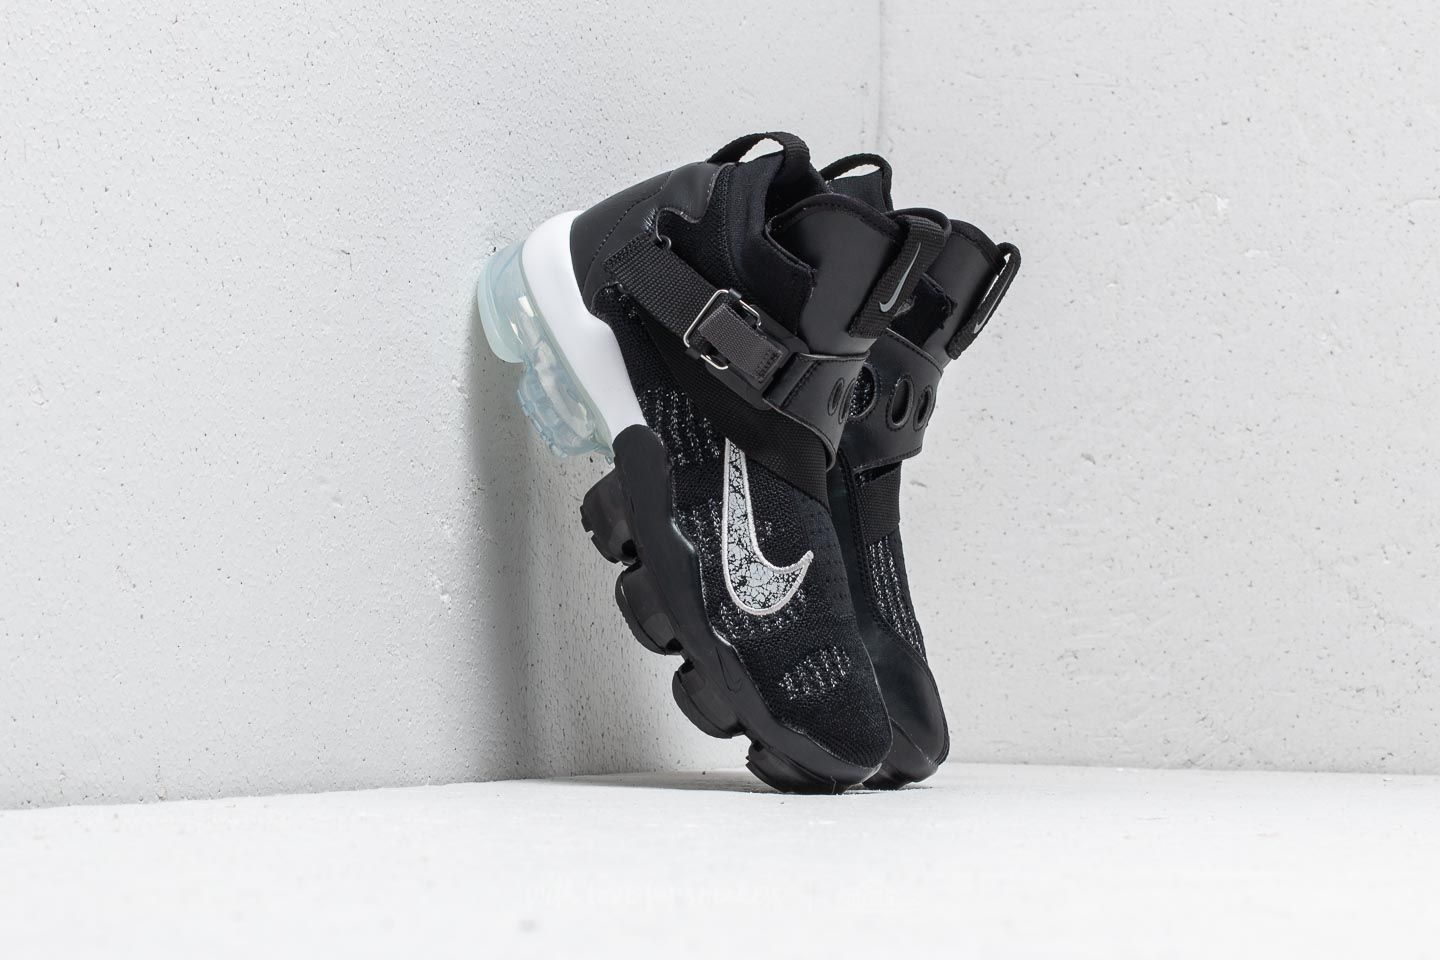 5efc861a54c2 Nike Air Vapormax Premier Flyknit Black  Metallic Silver-White at a great  price 159